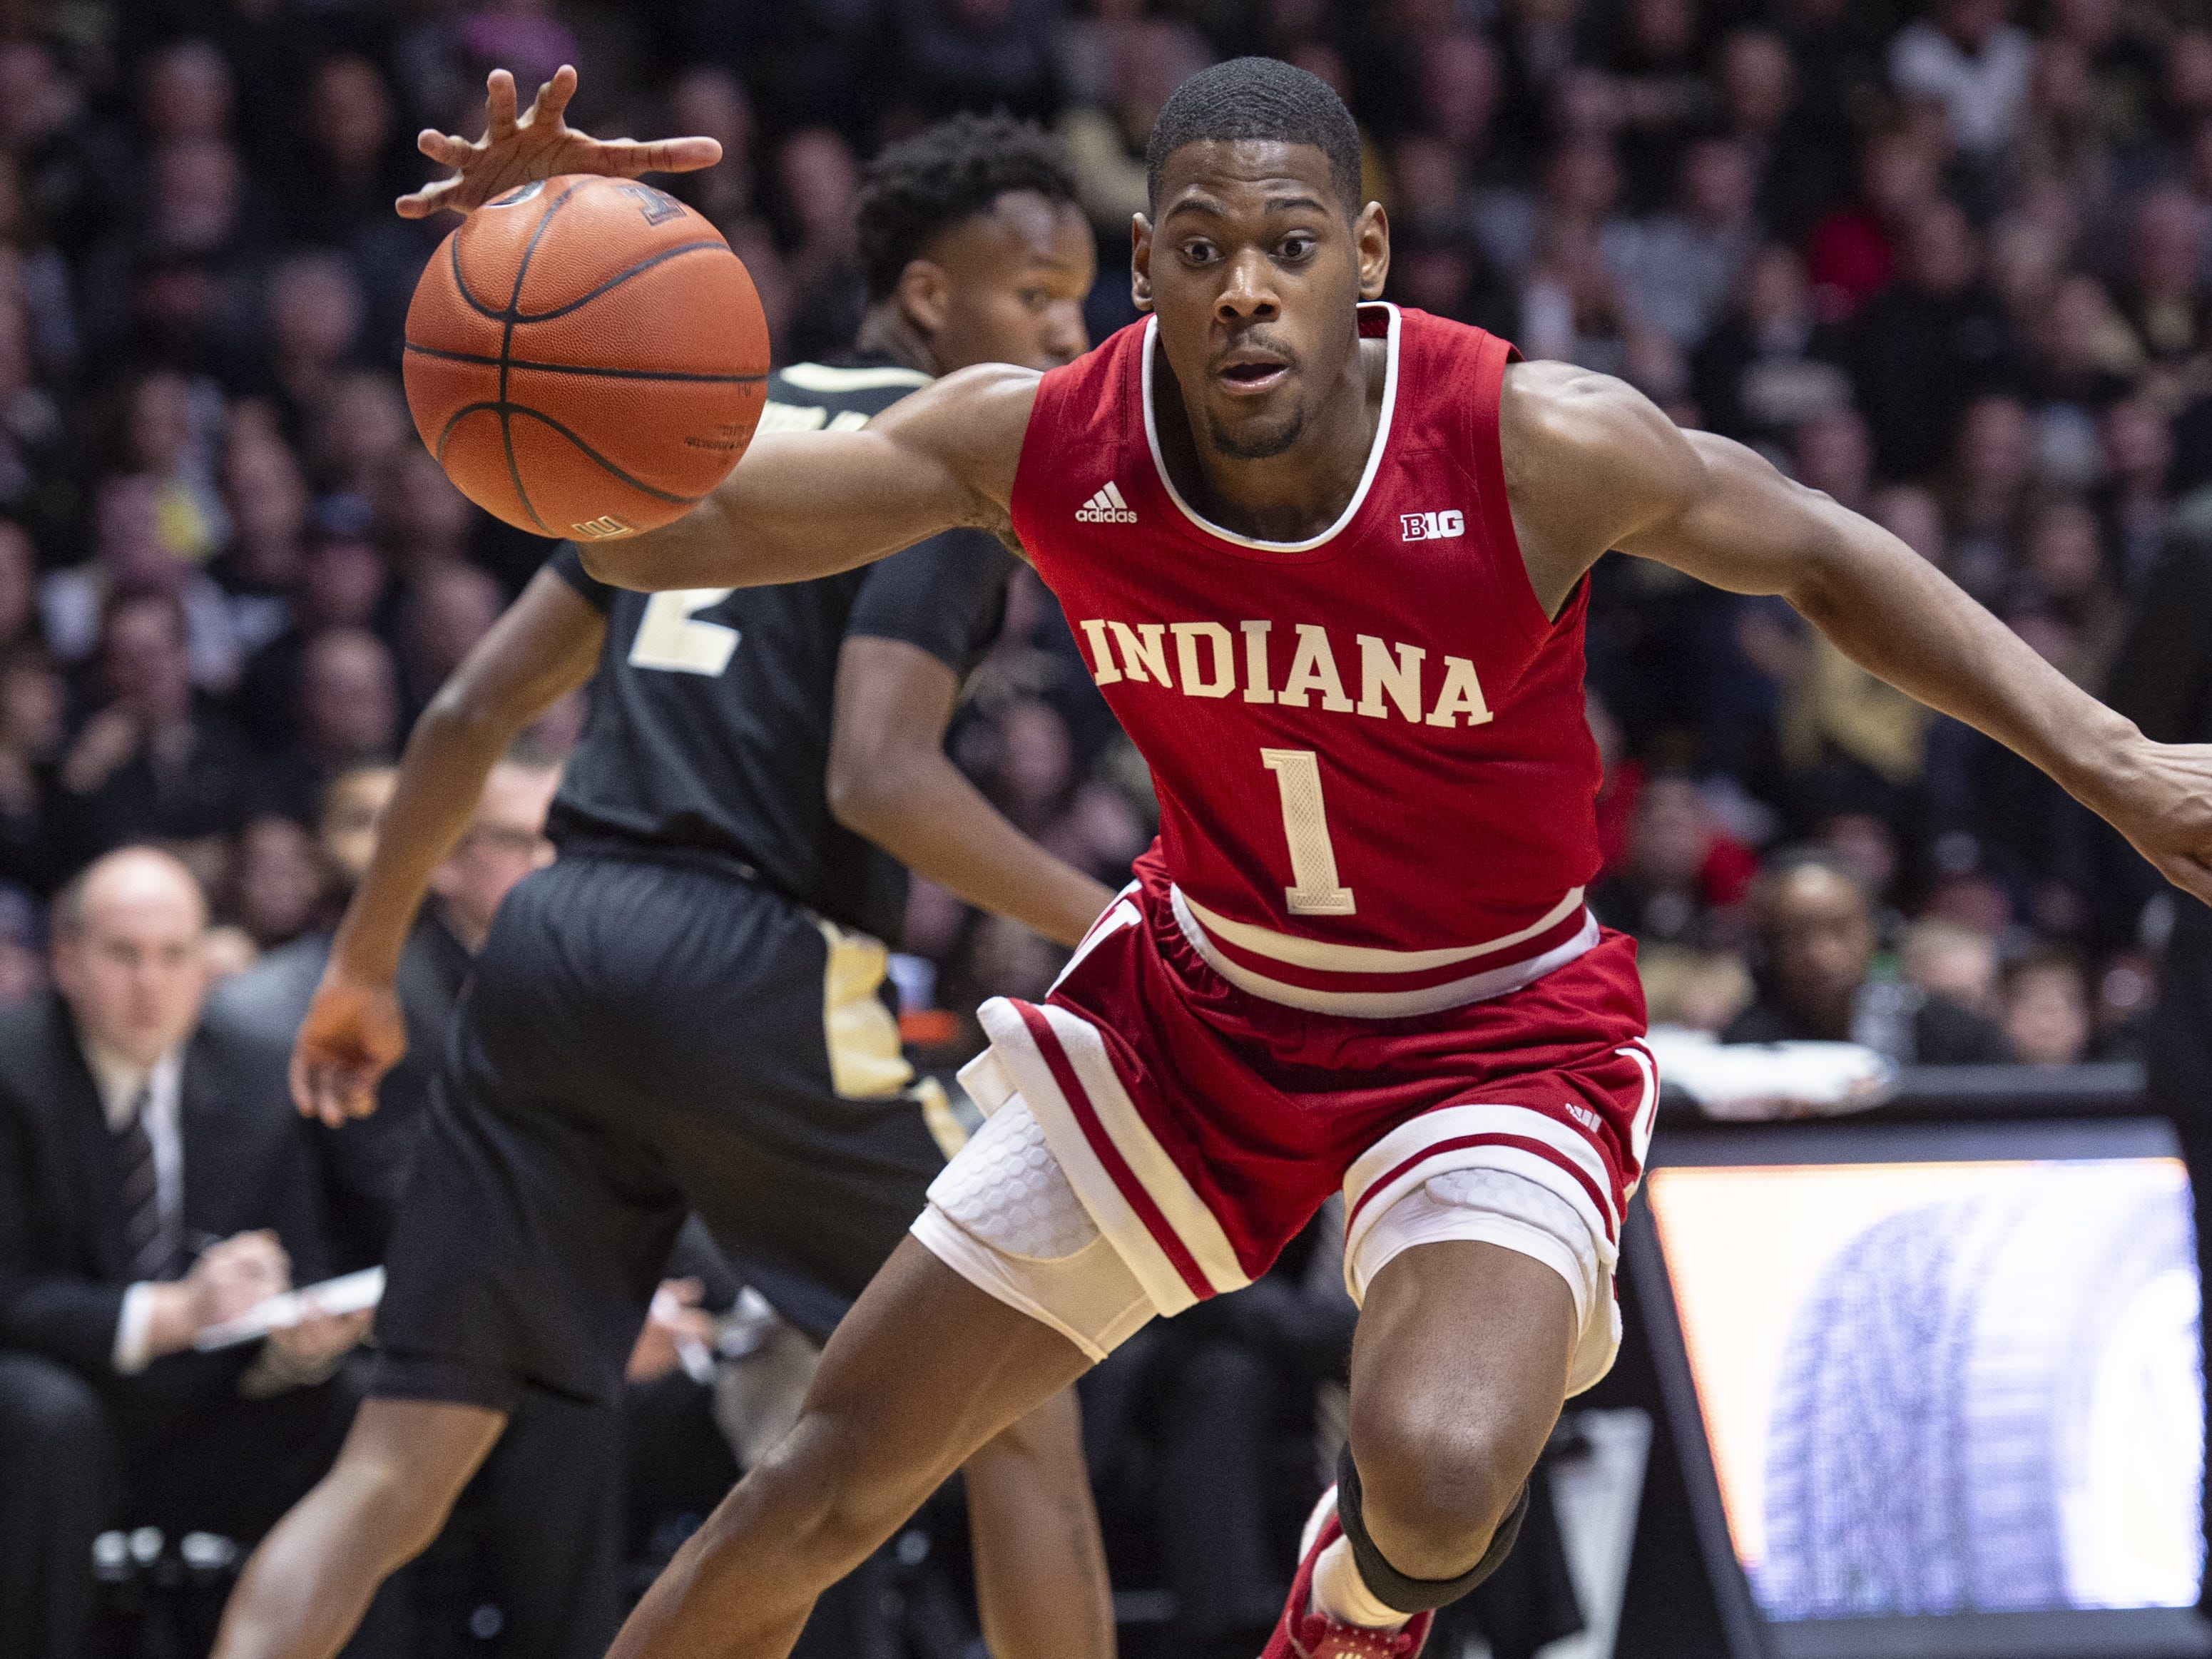 Indiana Hoosiers guard Aljami Durham (1) makes a move toward the basket during the first half against Purdue.